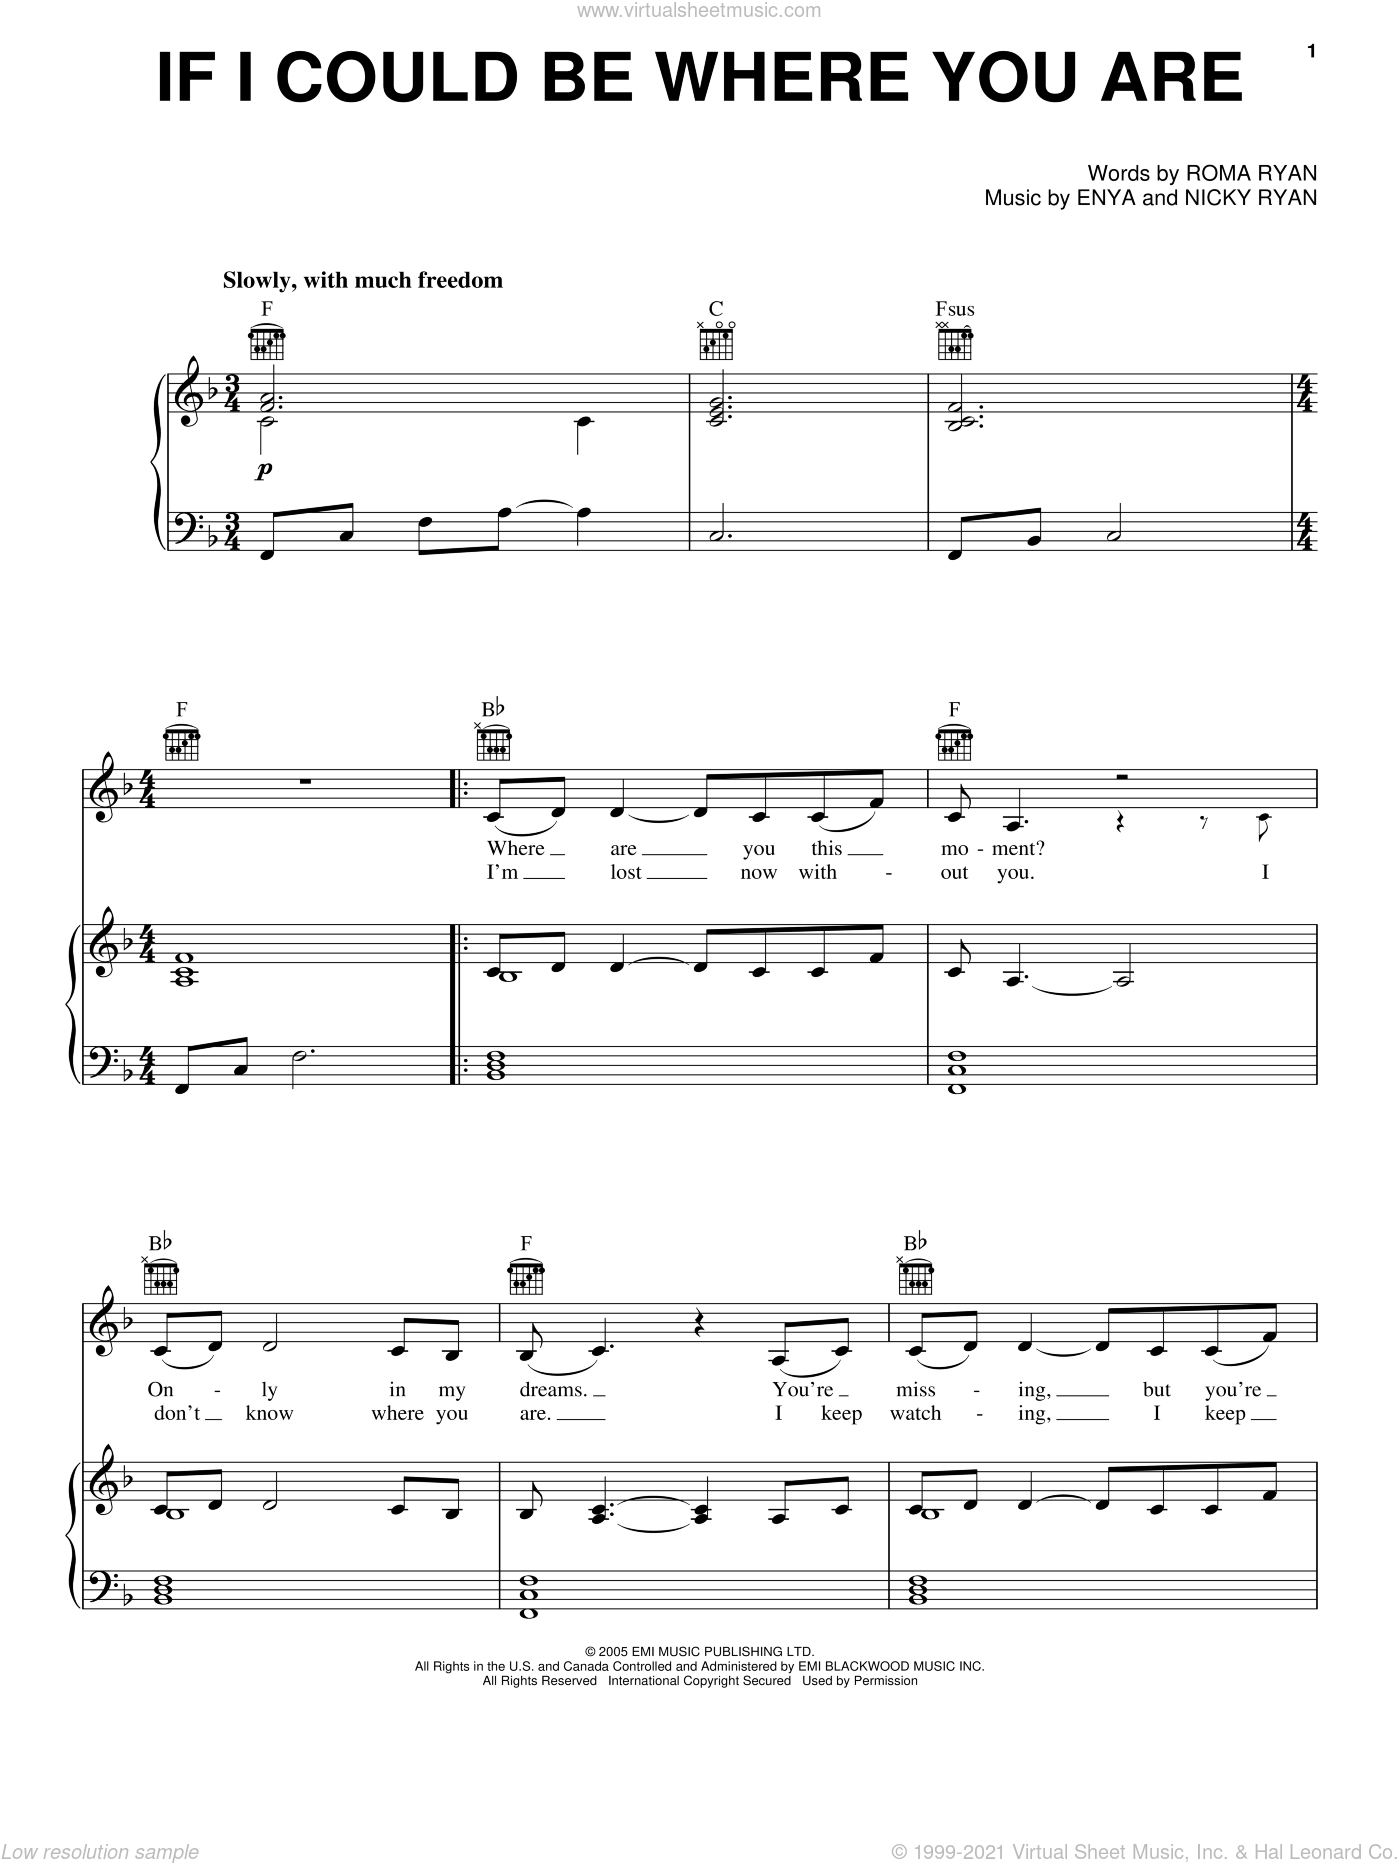 If I Could Be Where You Are sheet music for voice, piano or guitar by Roma Ryan